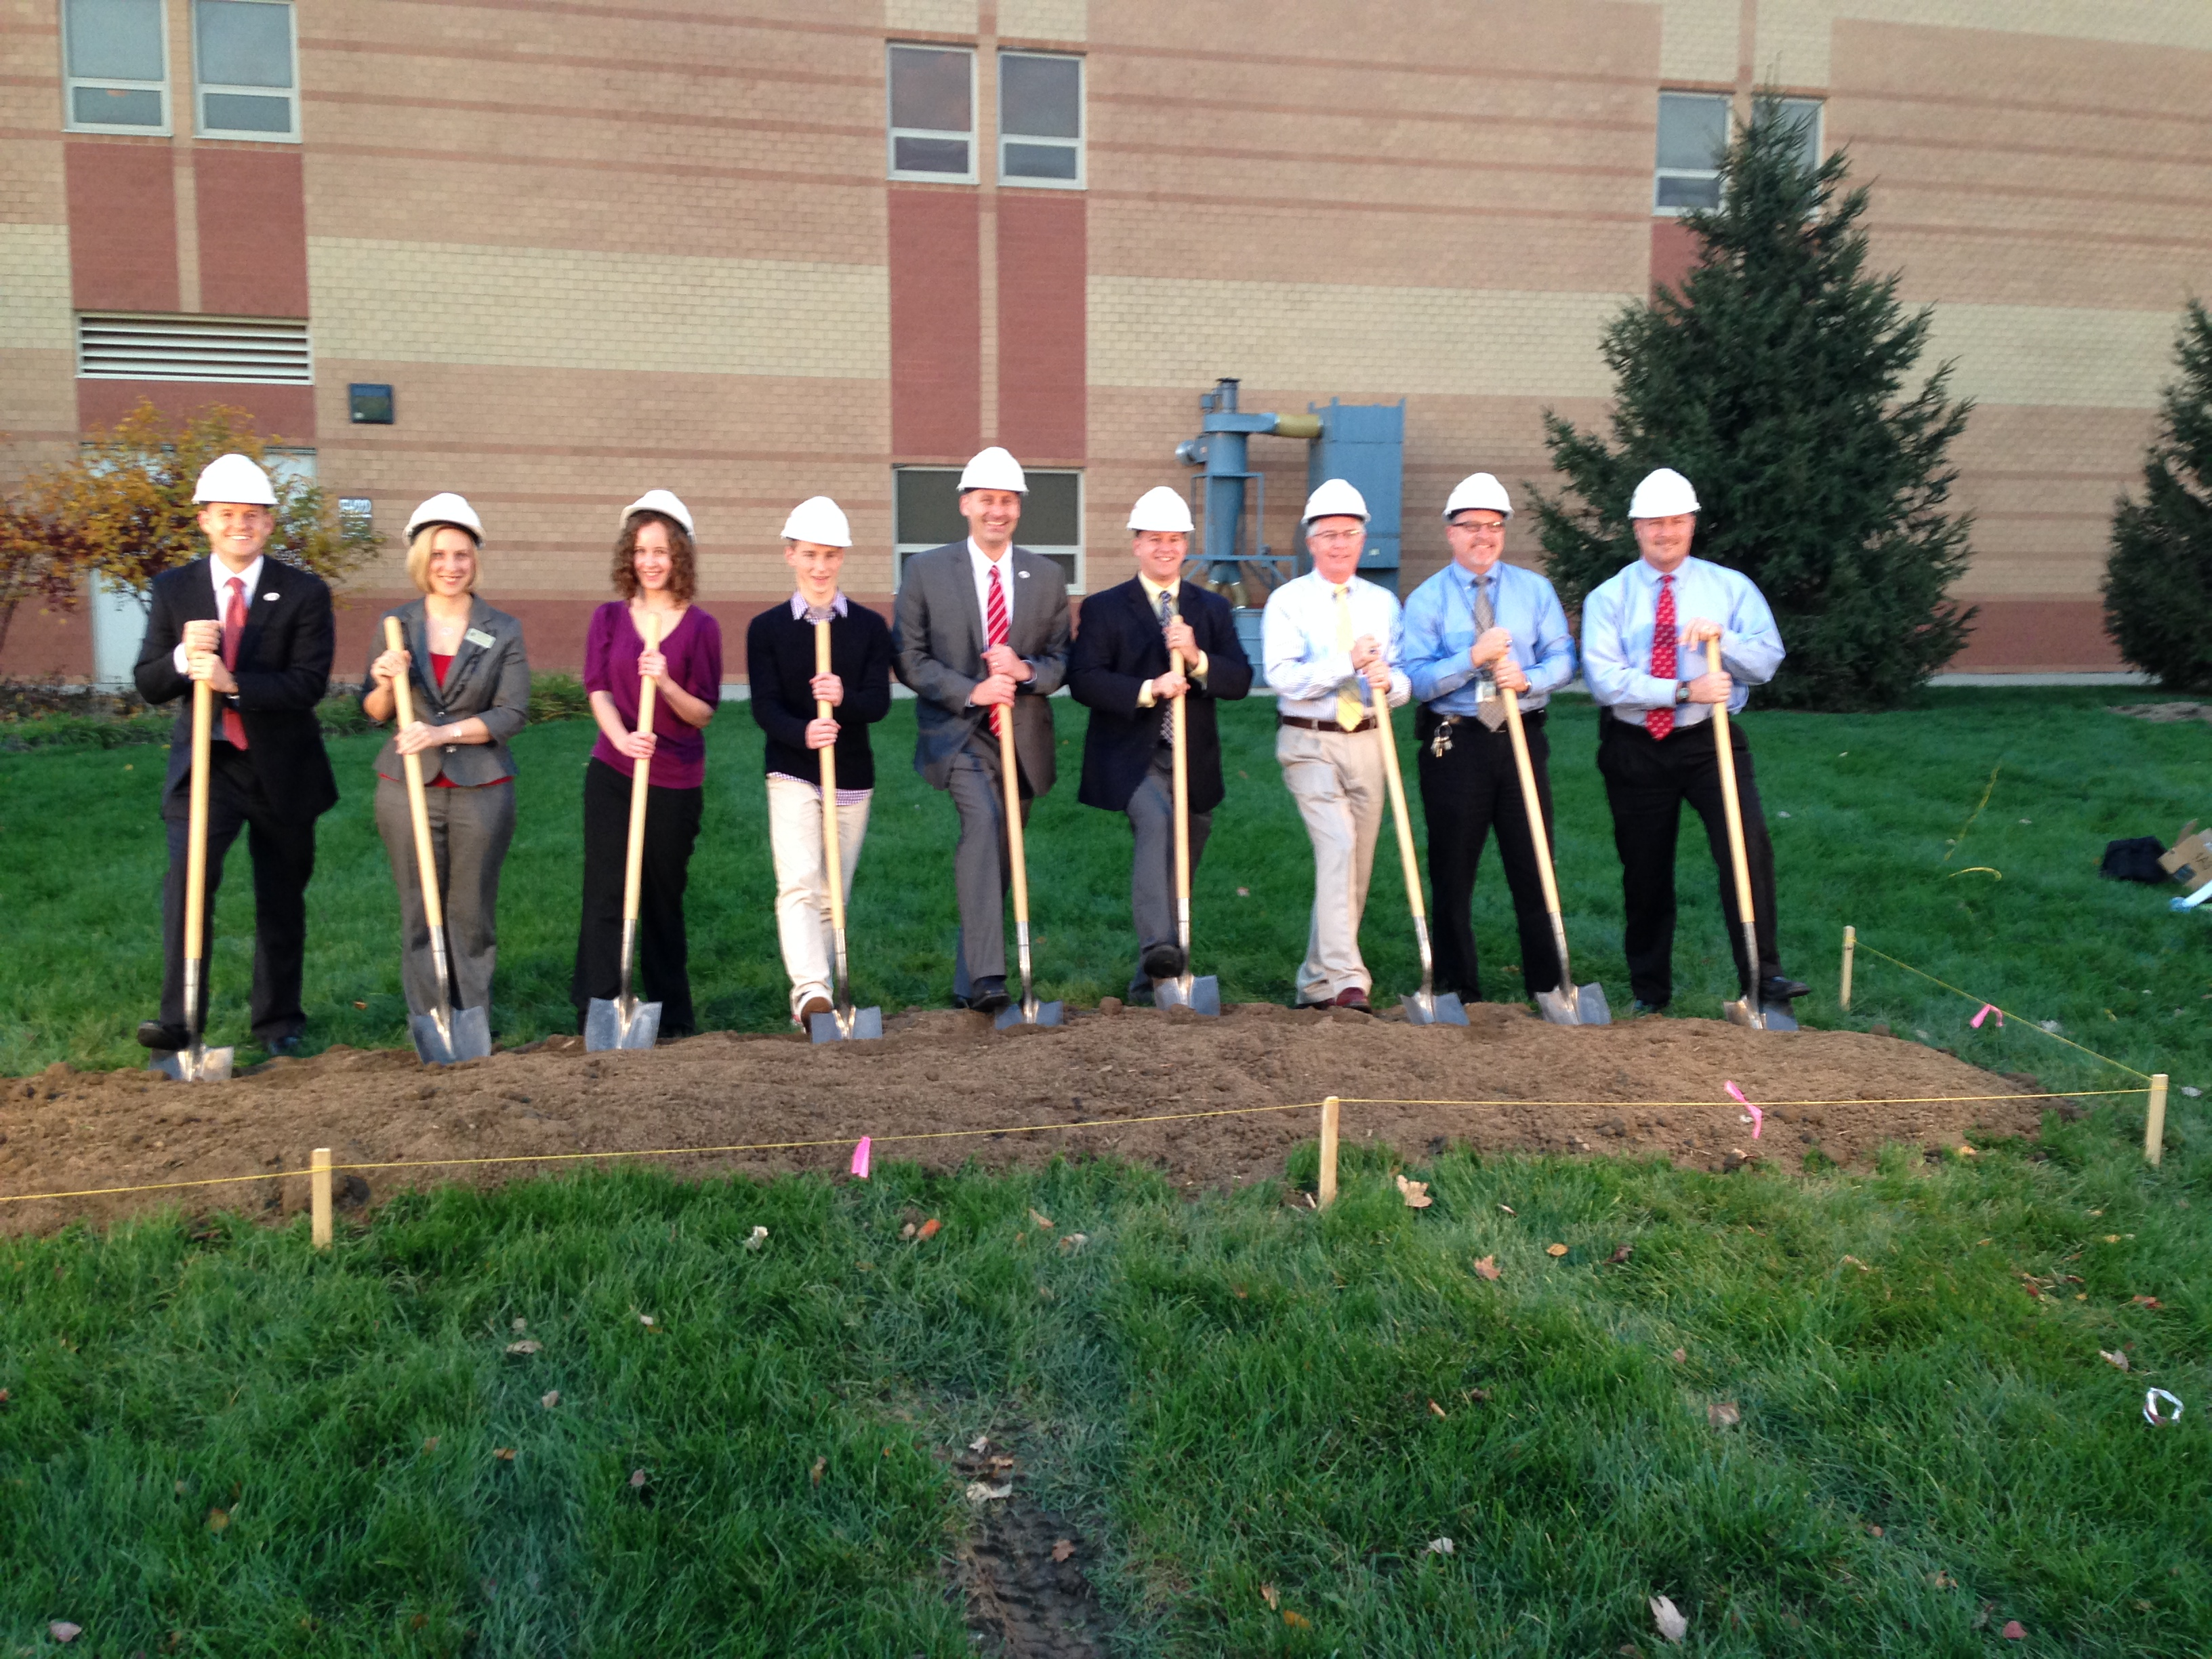 Fishers High School principal Jason Urban, 5th from left, breaks ground for the Senior Academy. He is joined by Fishers High School students and administrative staff. (Photo by Julie Roberts.)